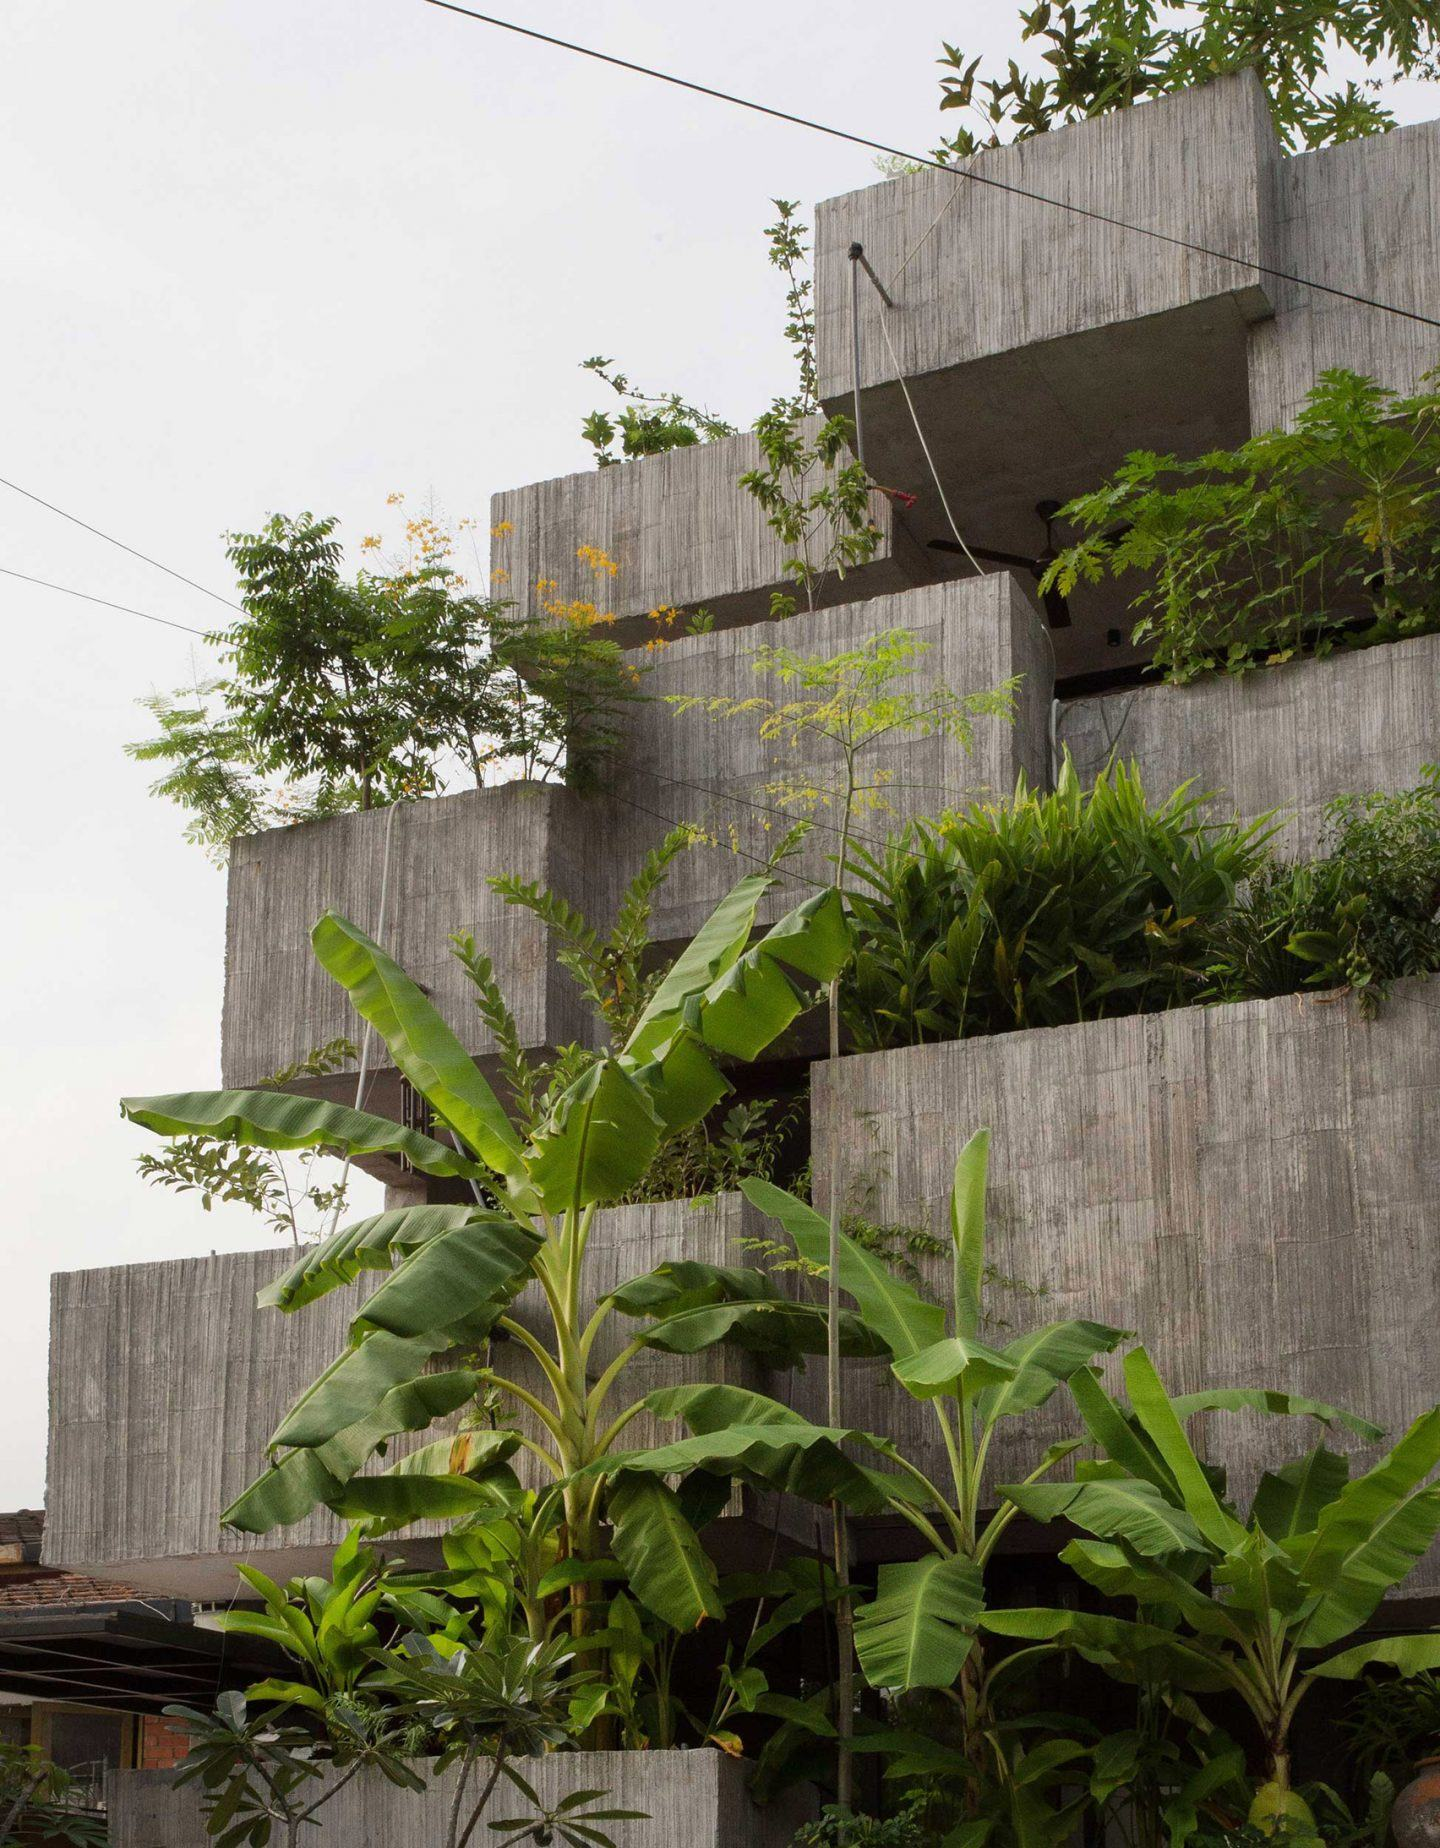 IGNANT-Architecture-Formzero-Planter-Box-House-001